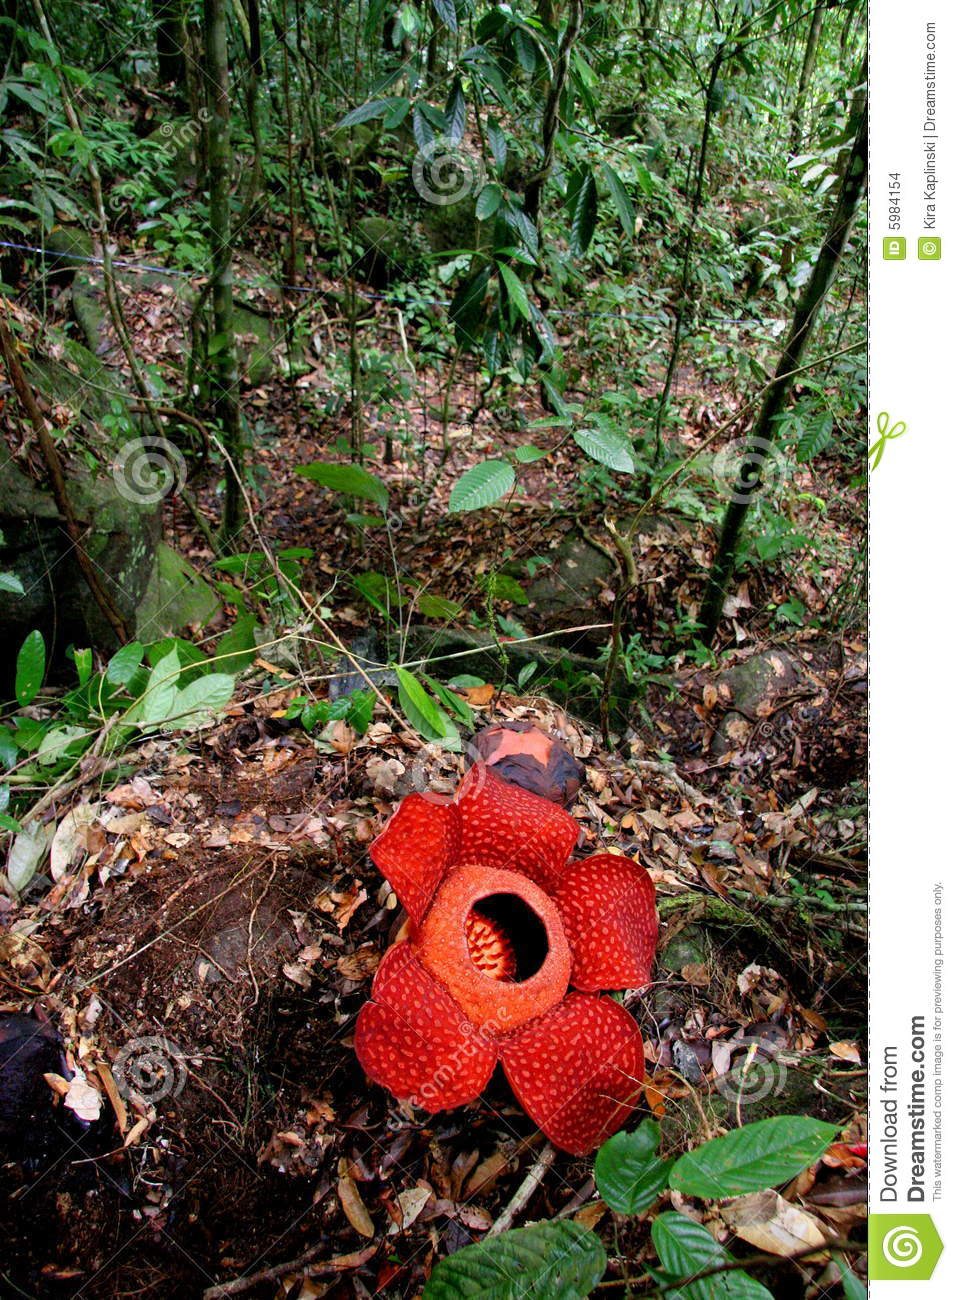 Rafflesia The Biggest Flower In The World Stock Images